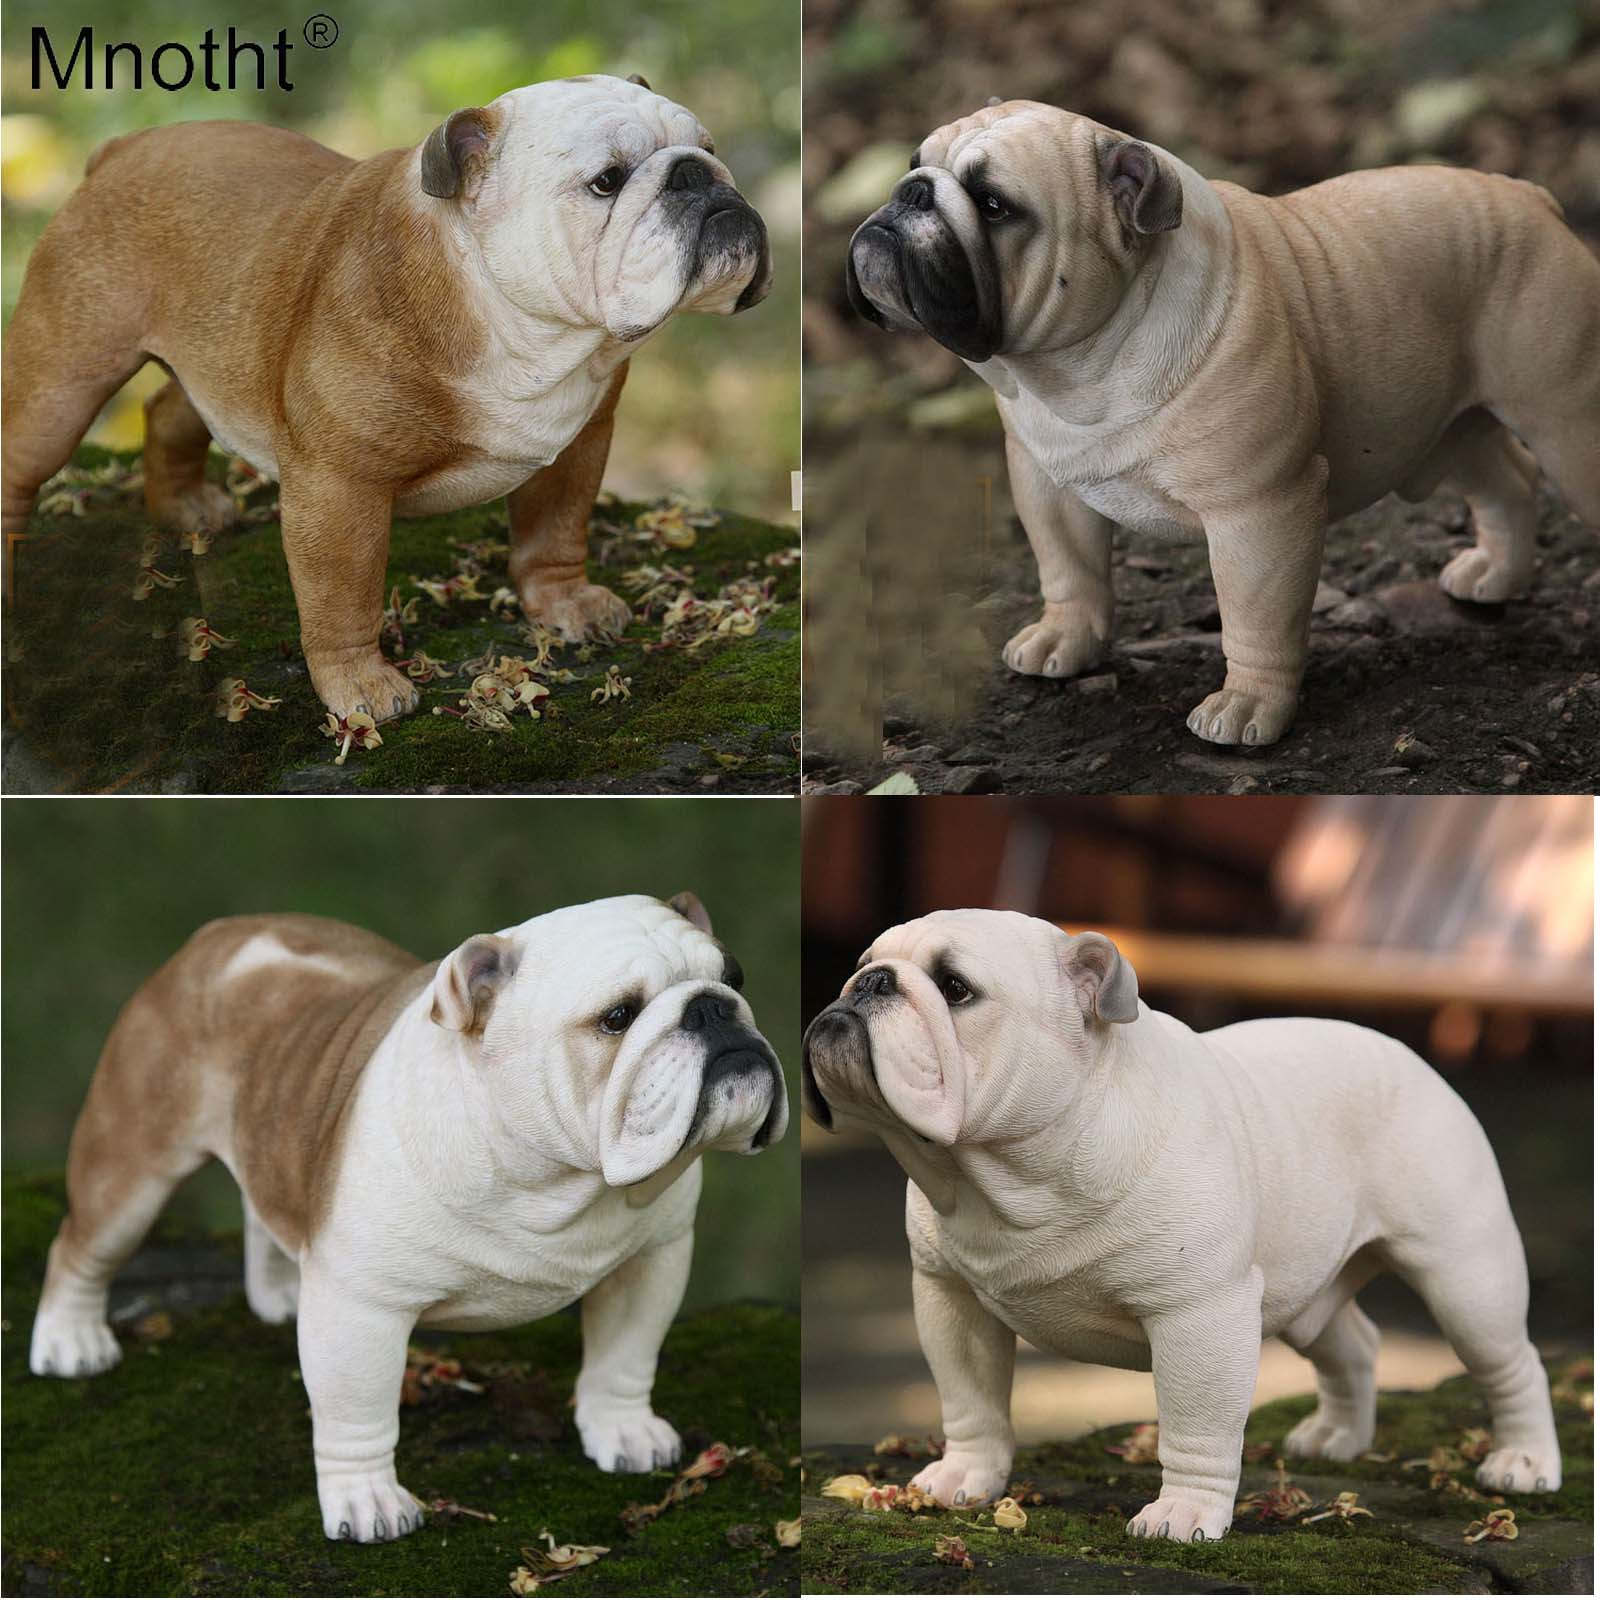 Mnotht Collections 1/4 Scale British Bulldog Model Toys Sculpture Dog Model for 1:4 Soldier Scene Action Figures Accessories-in Action & Toy Figures from Toys & Hobbies    1